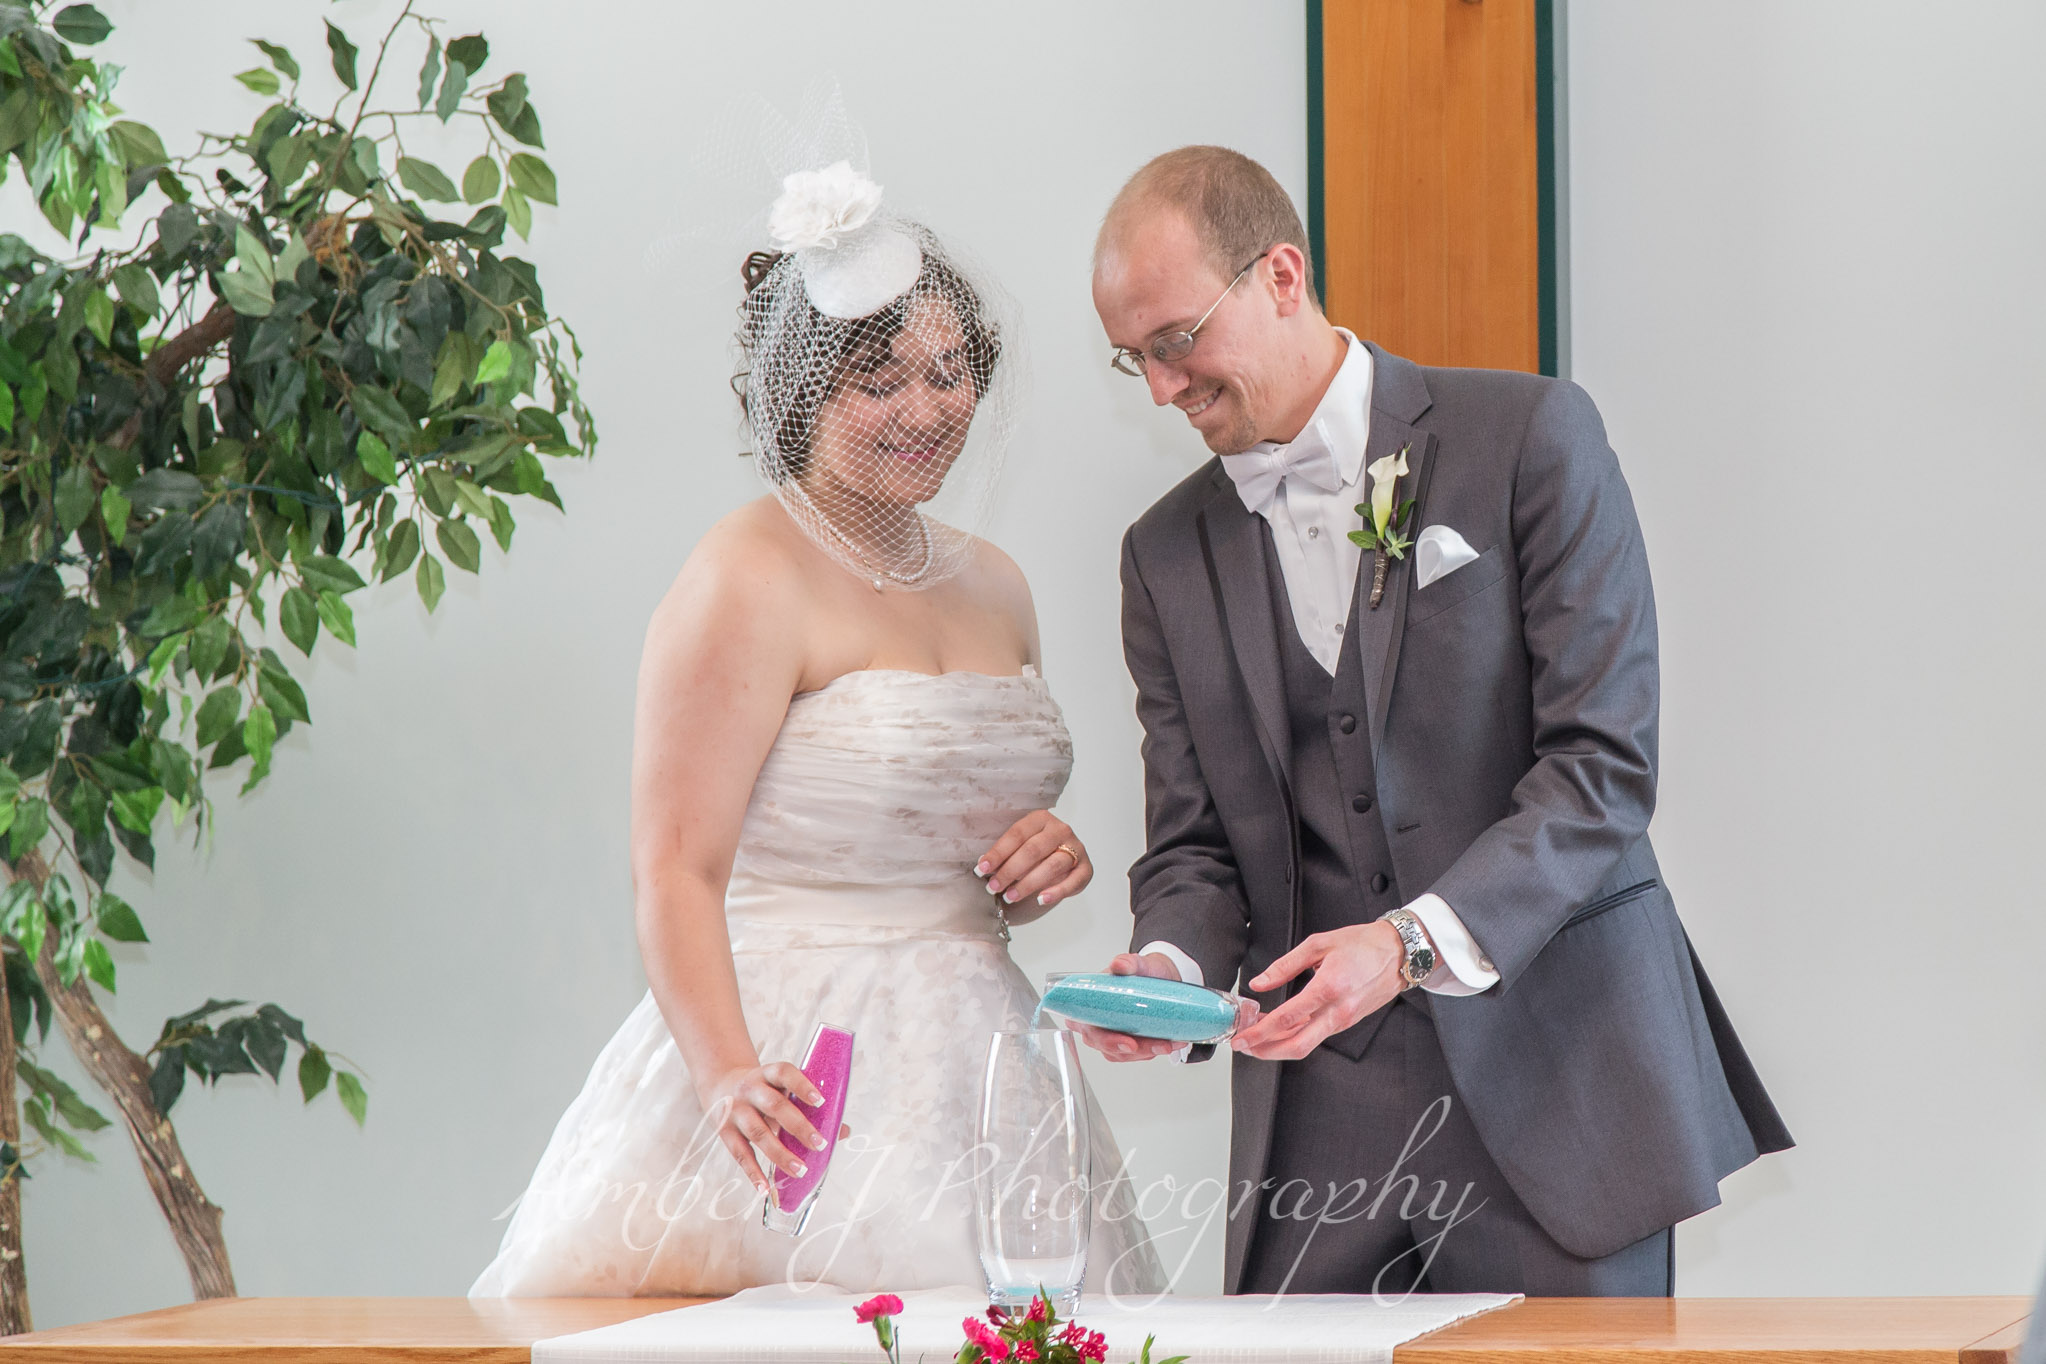 Sommer_Wedding_AmberJphotography_13.jpg